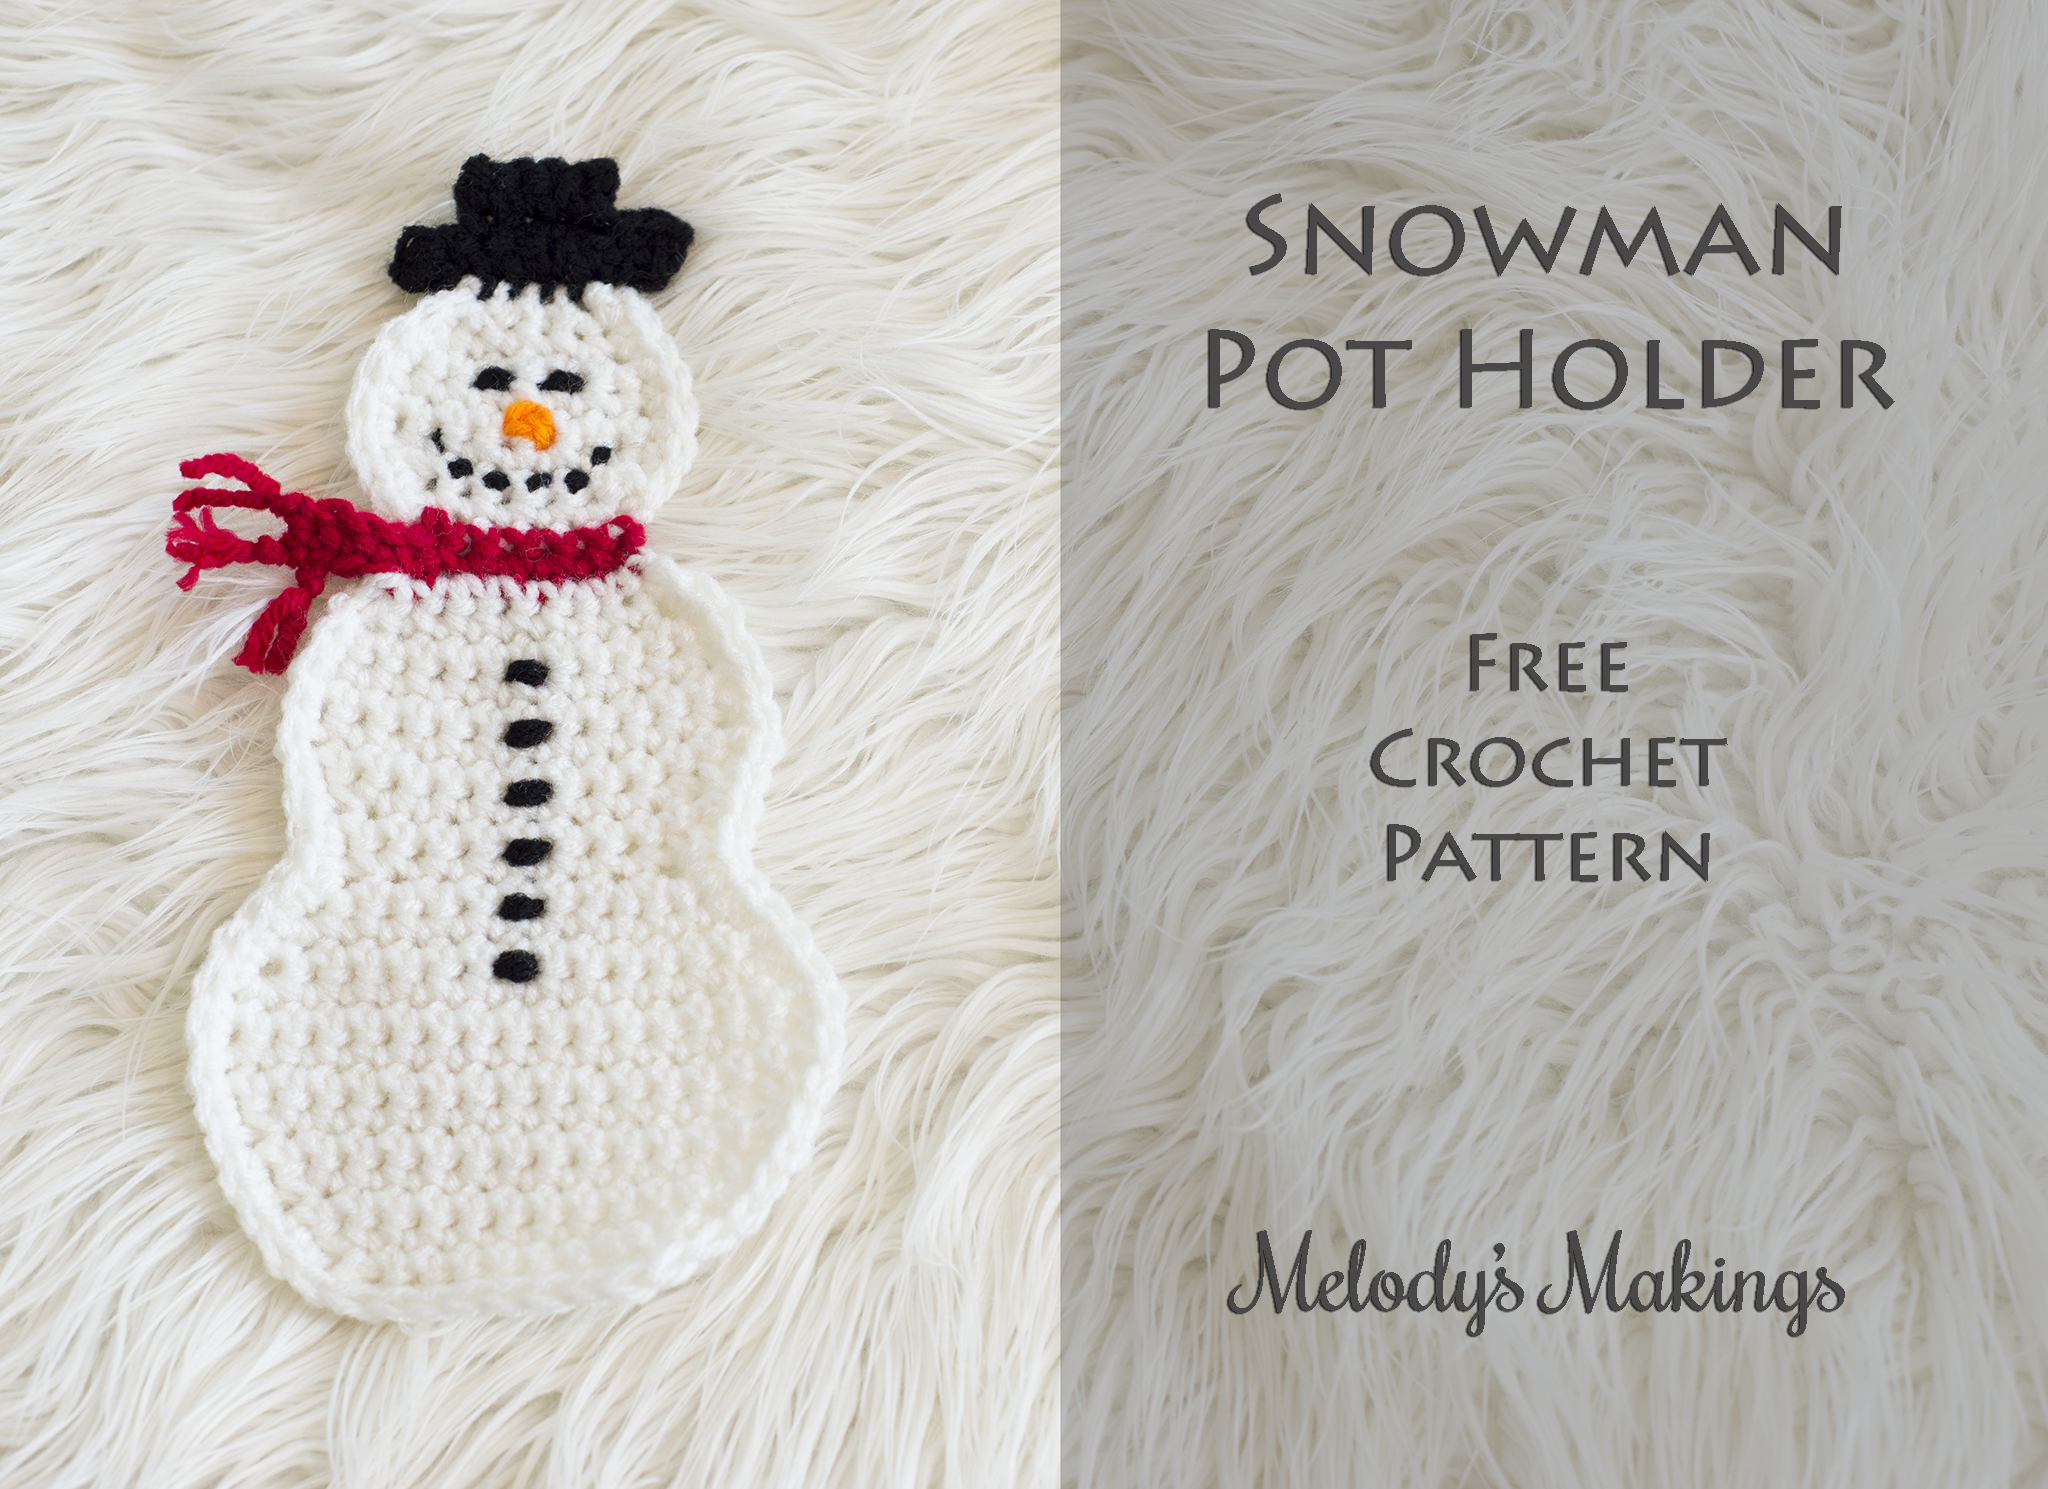 Crochet knitted snowman: photo, description, scheme 45